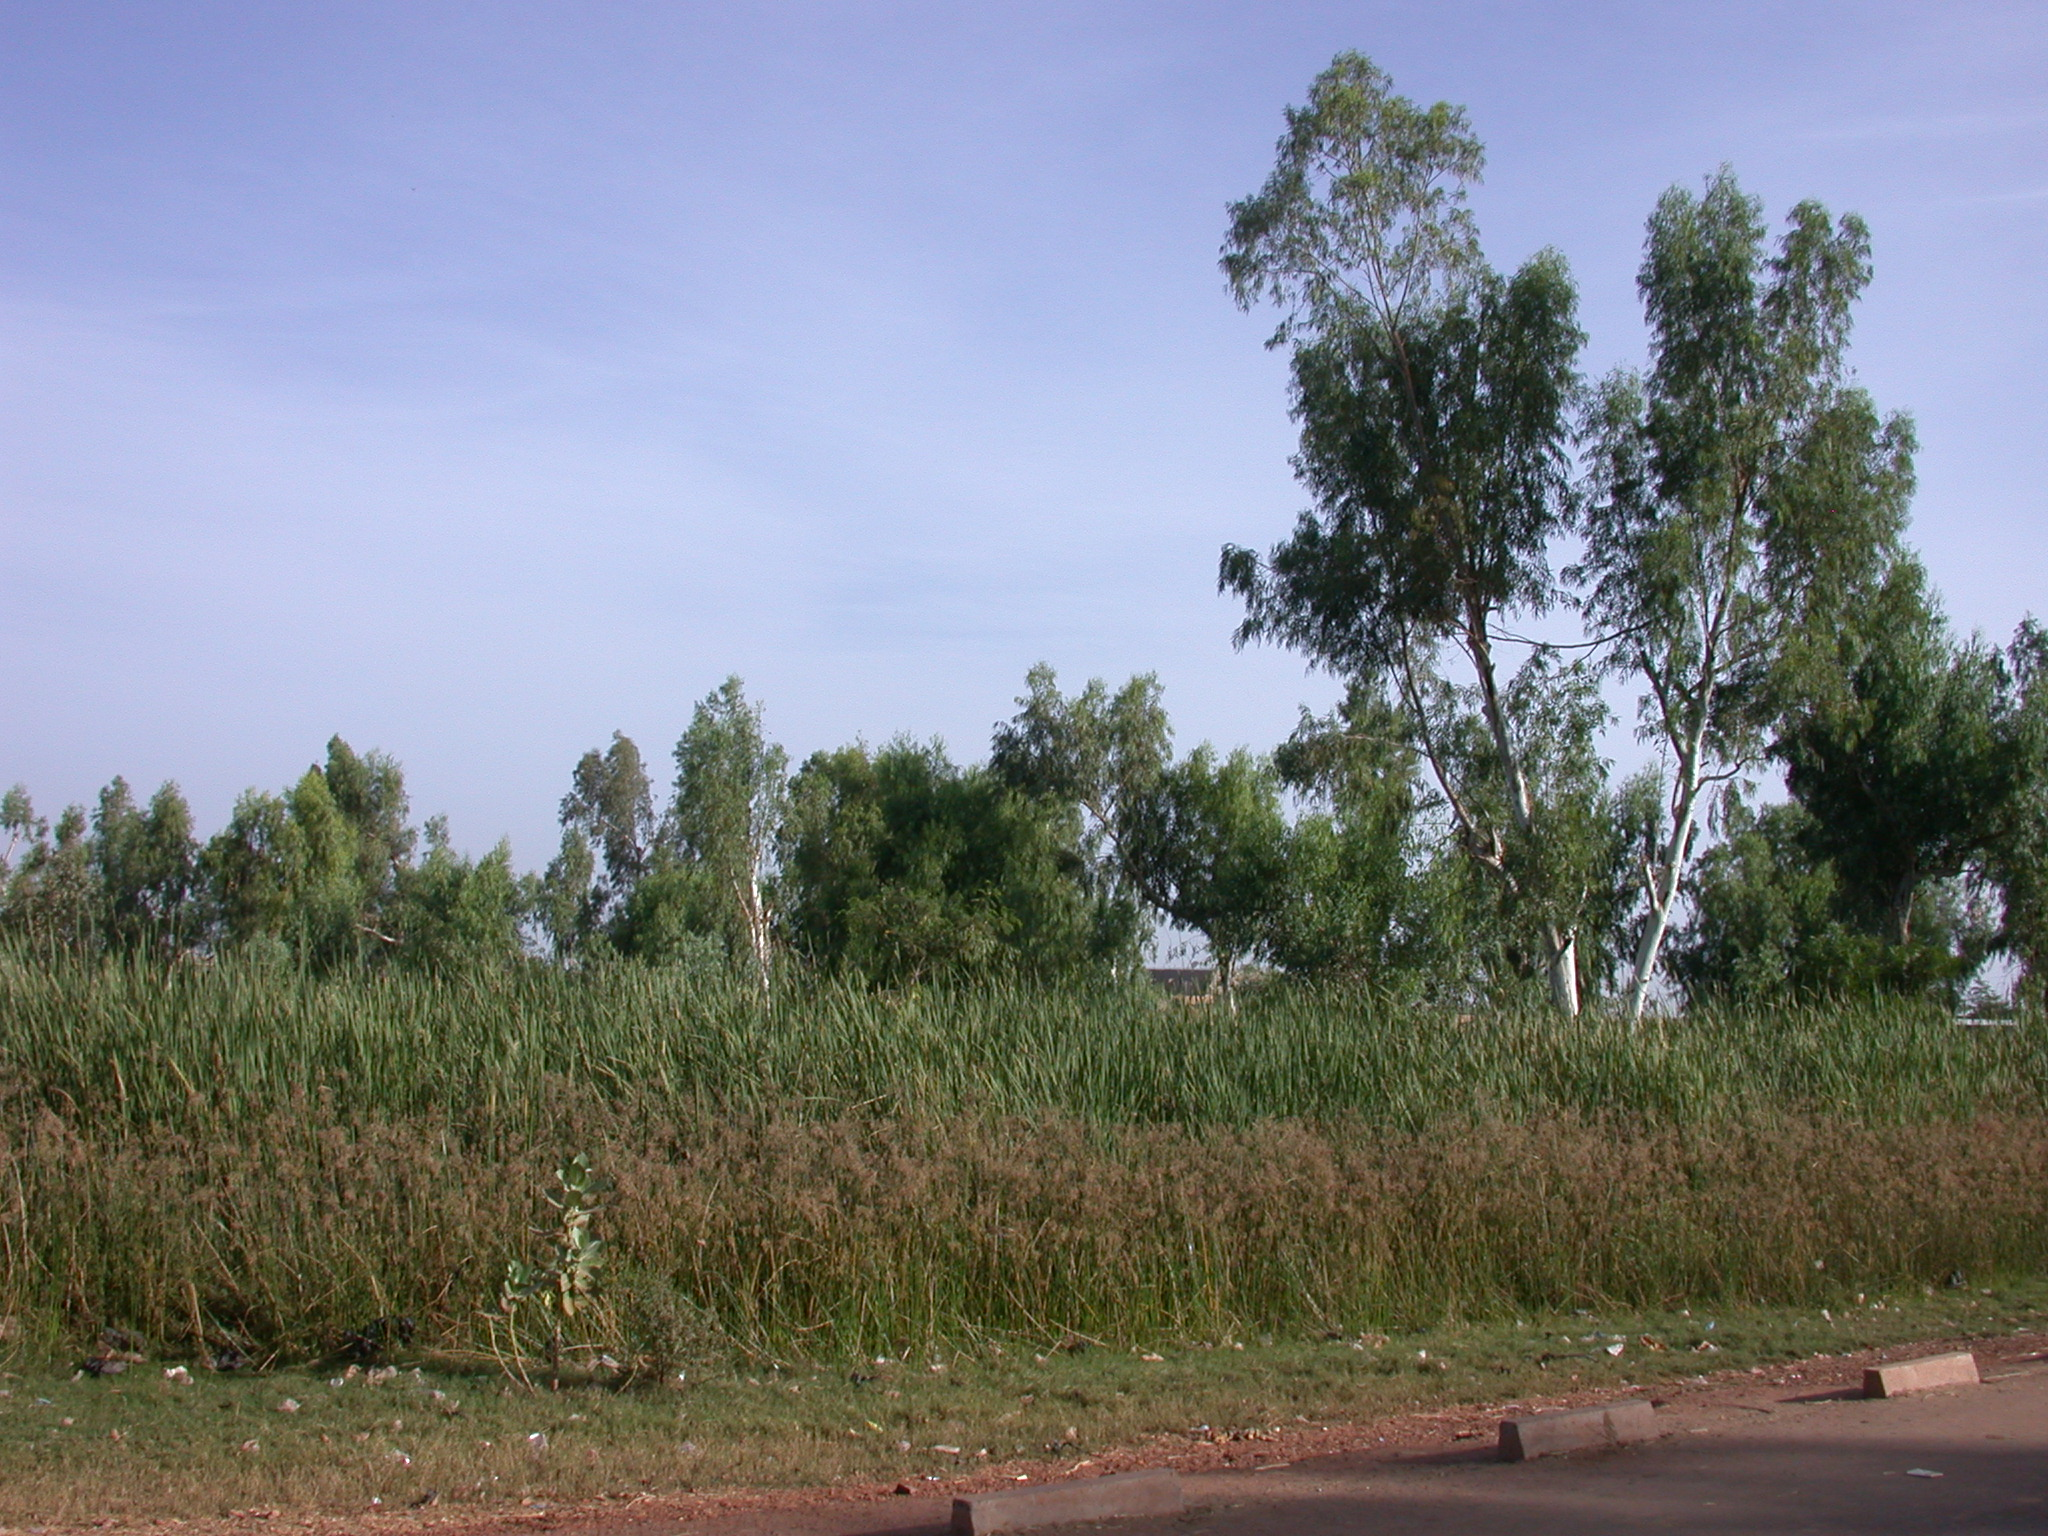 Landscape Outside Niono, Mali